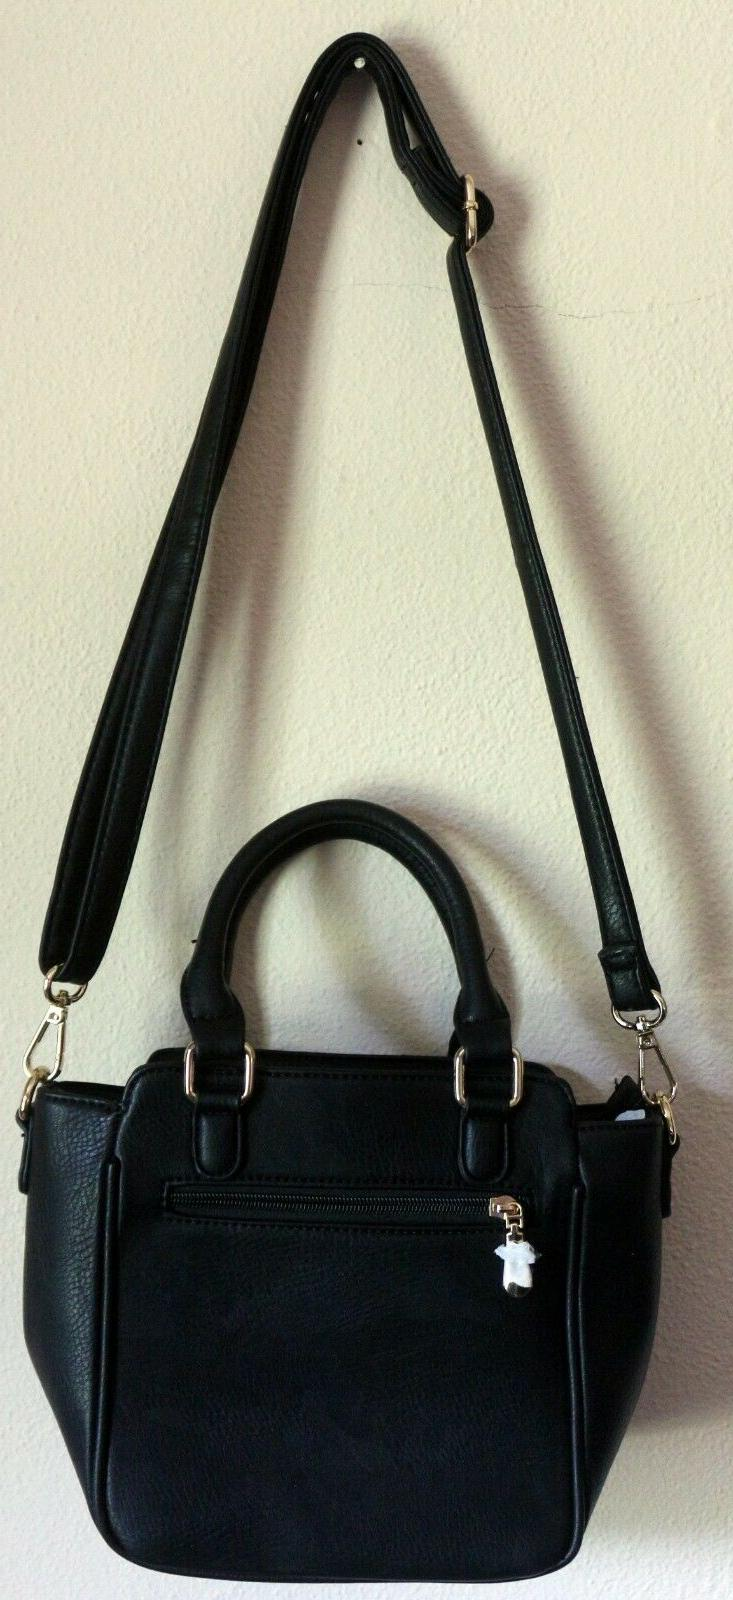 NWT Alyssa Free Faux Handbag Crossbody